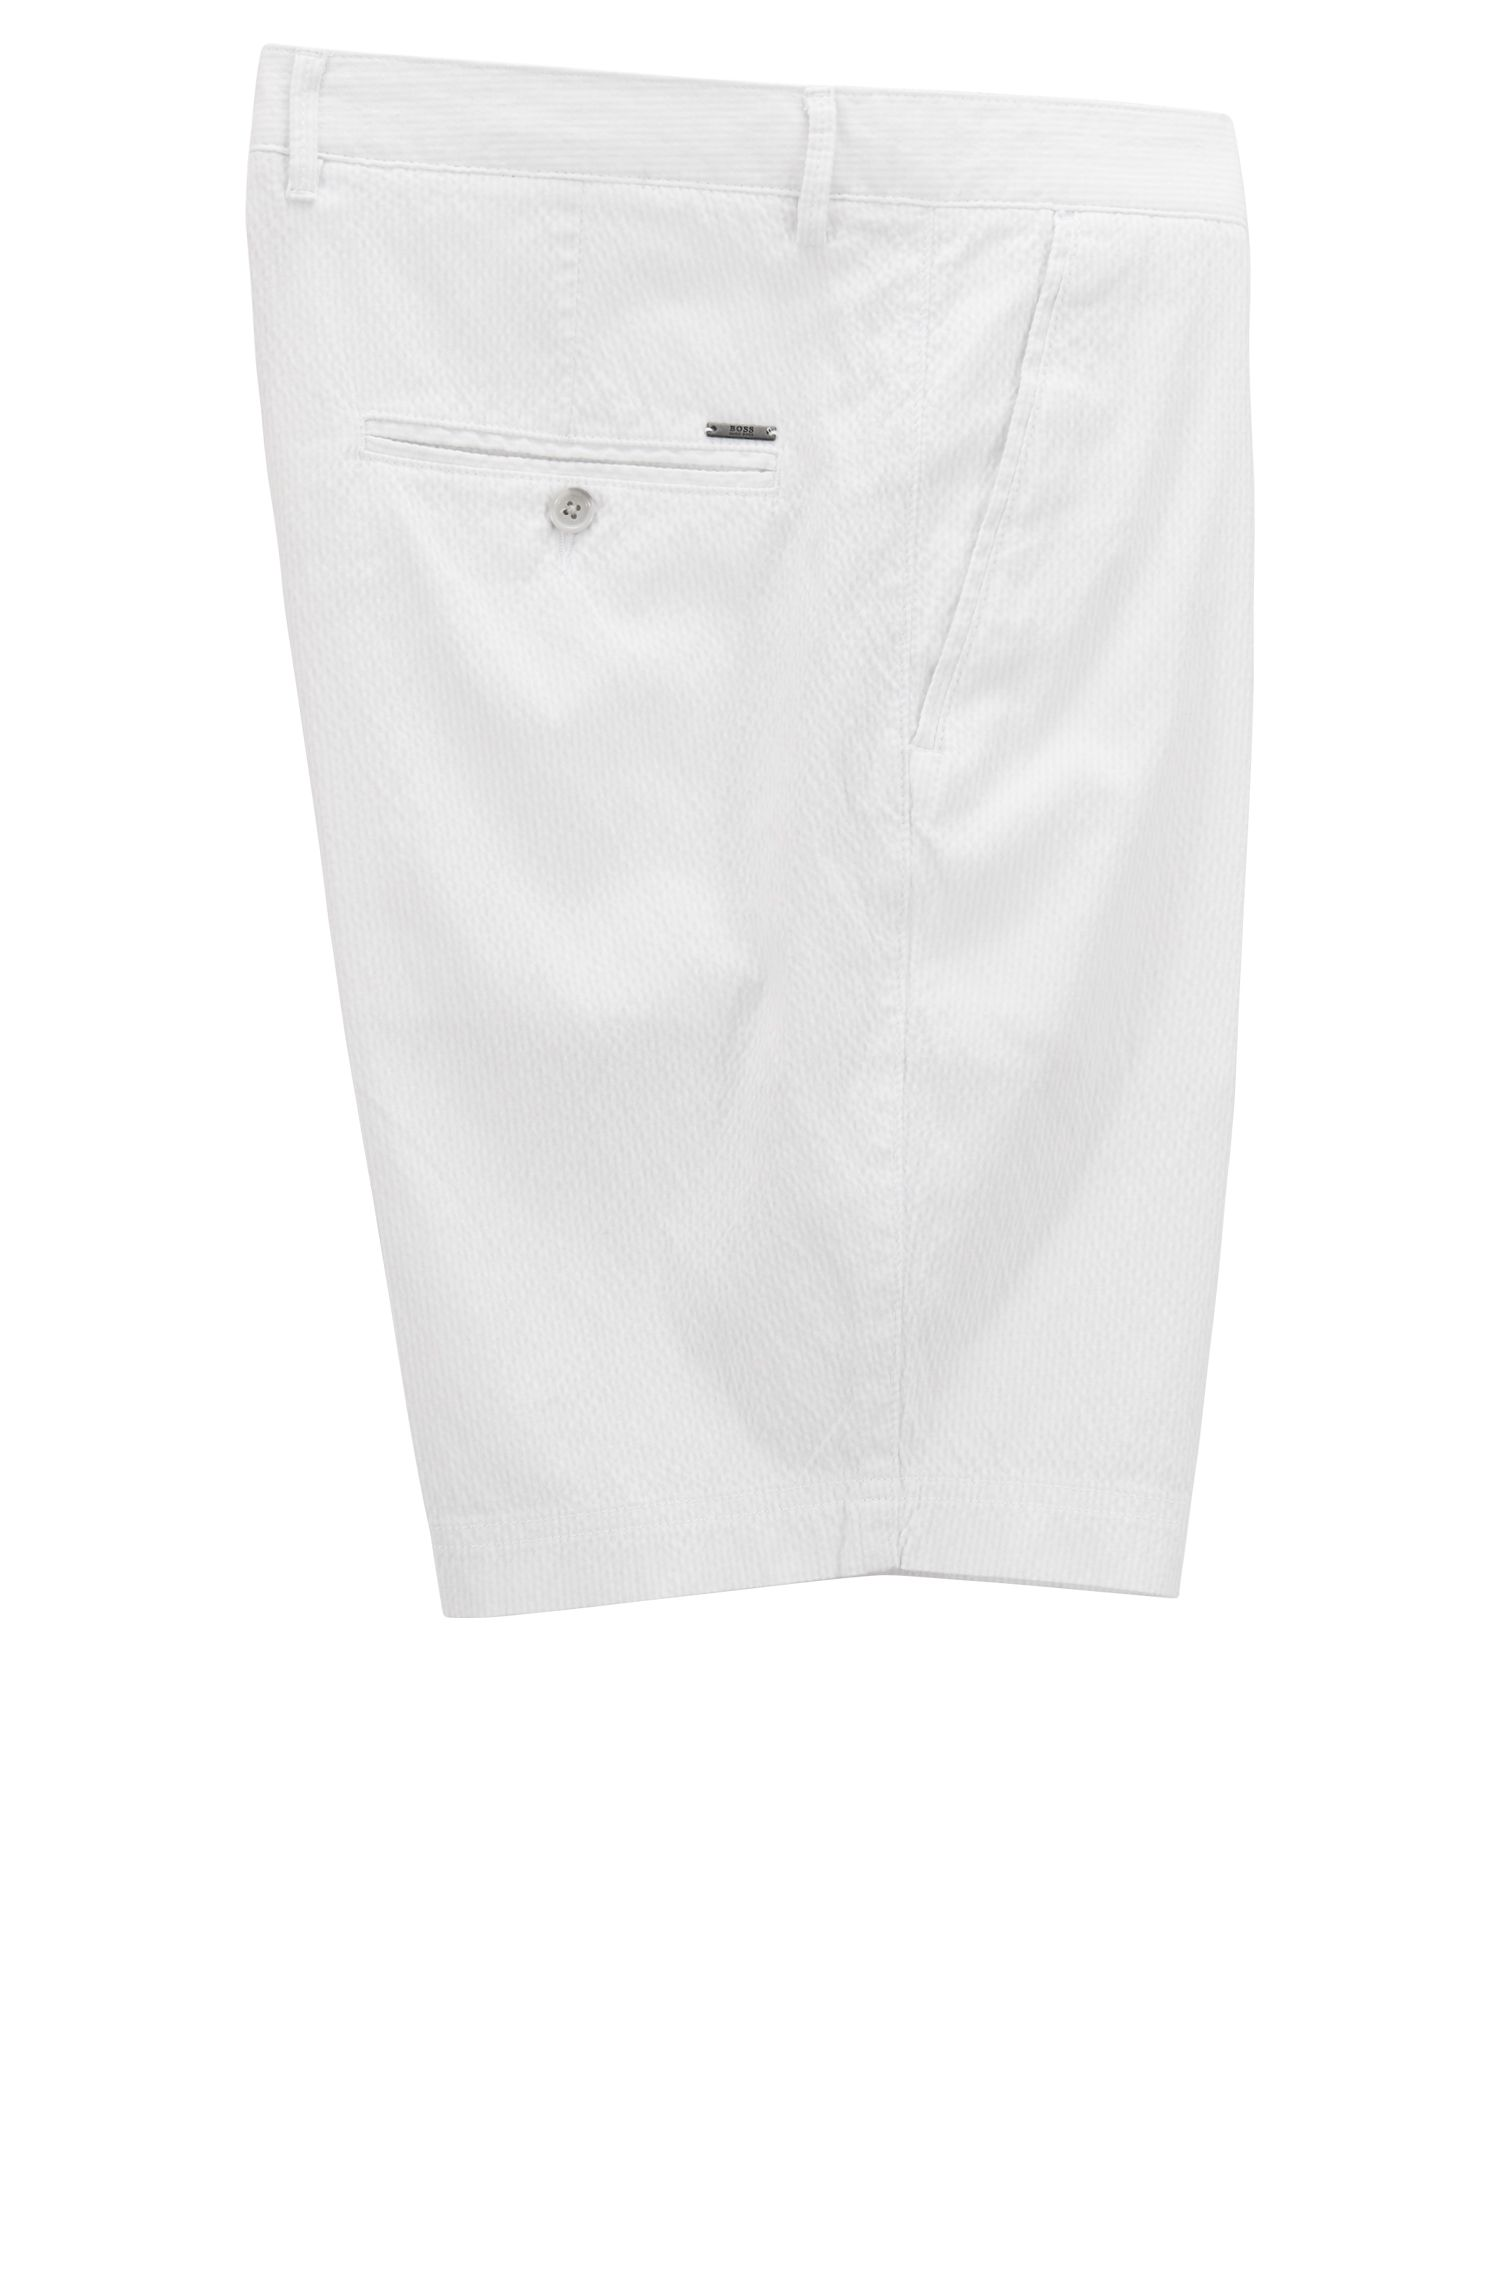 Pantaloncini regular fit in cotone seersucker elasticizzato